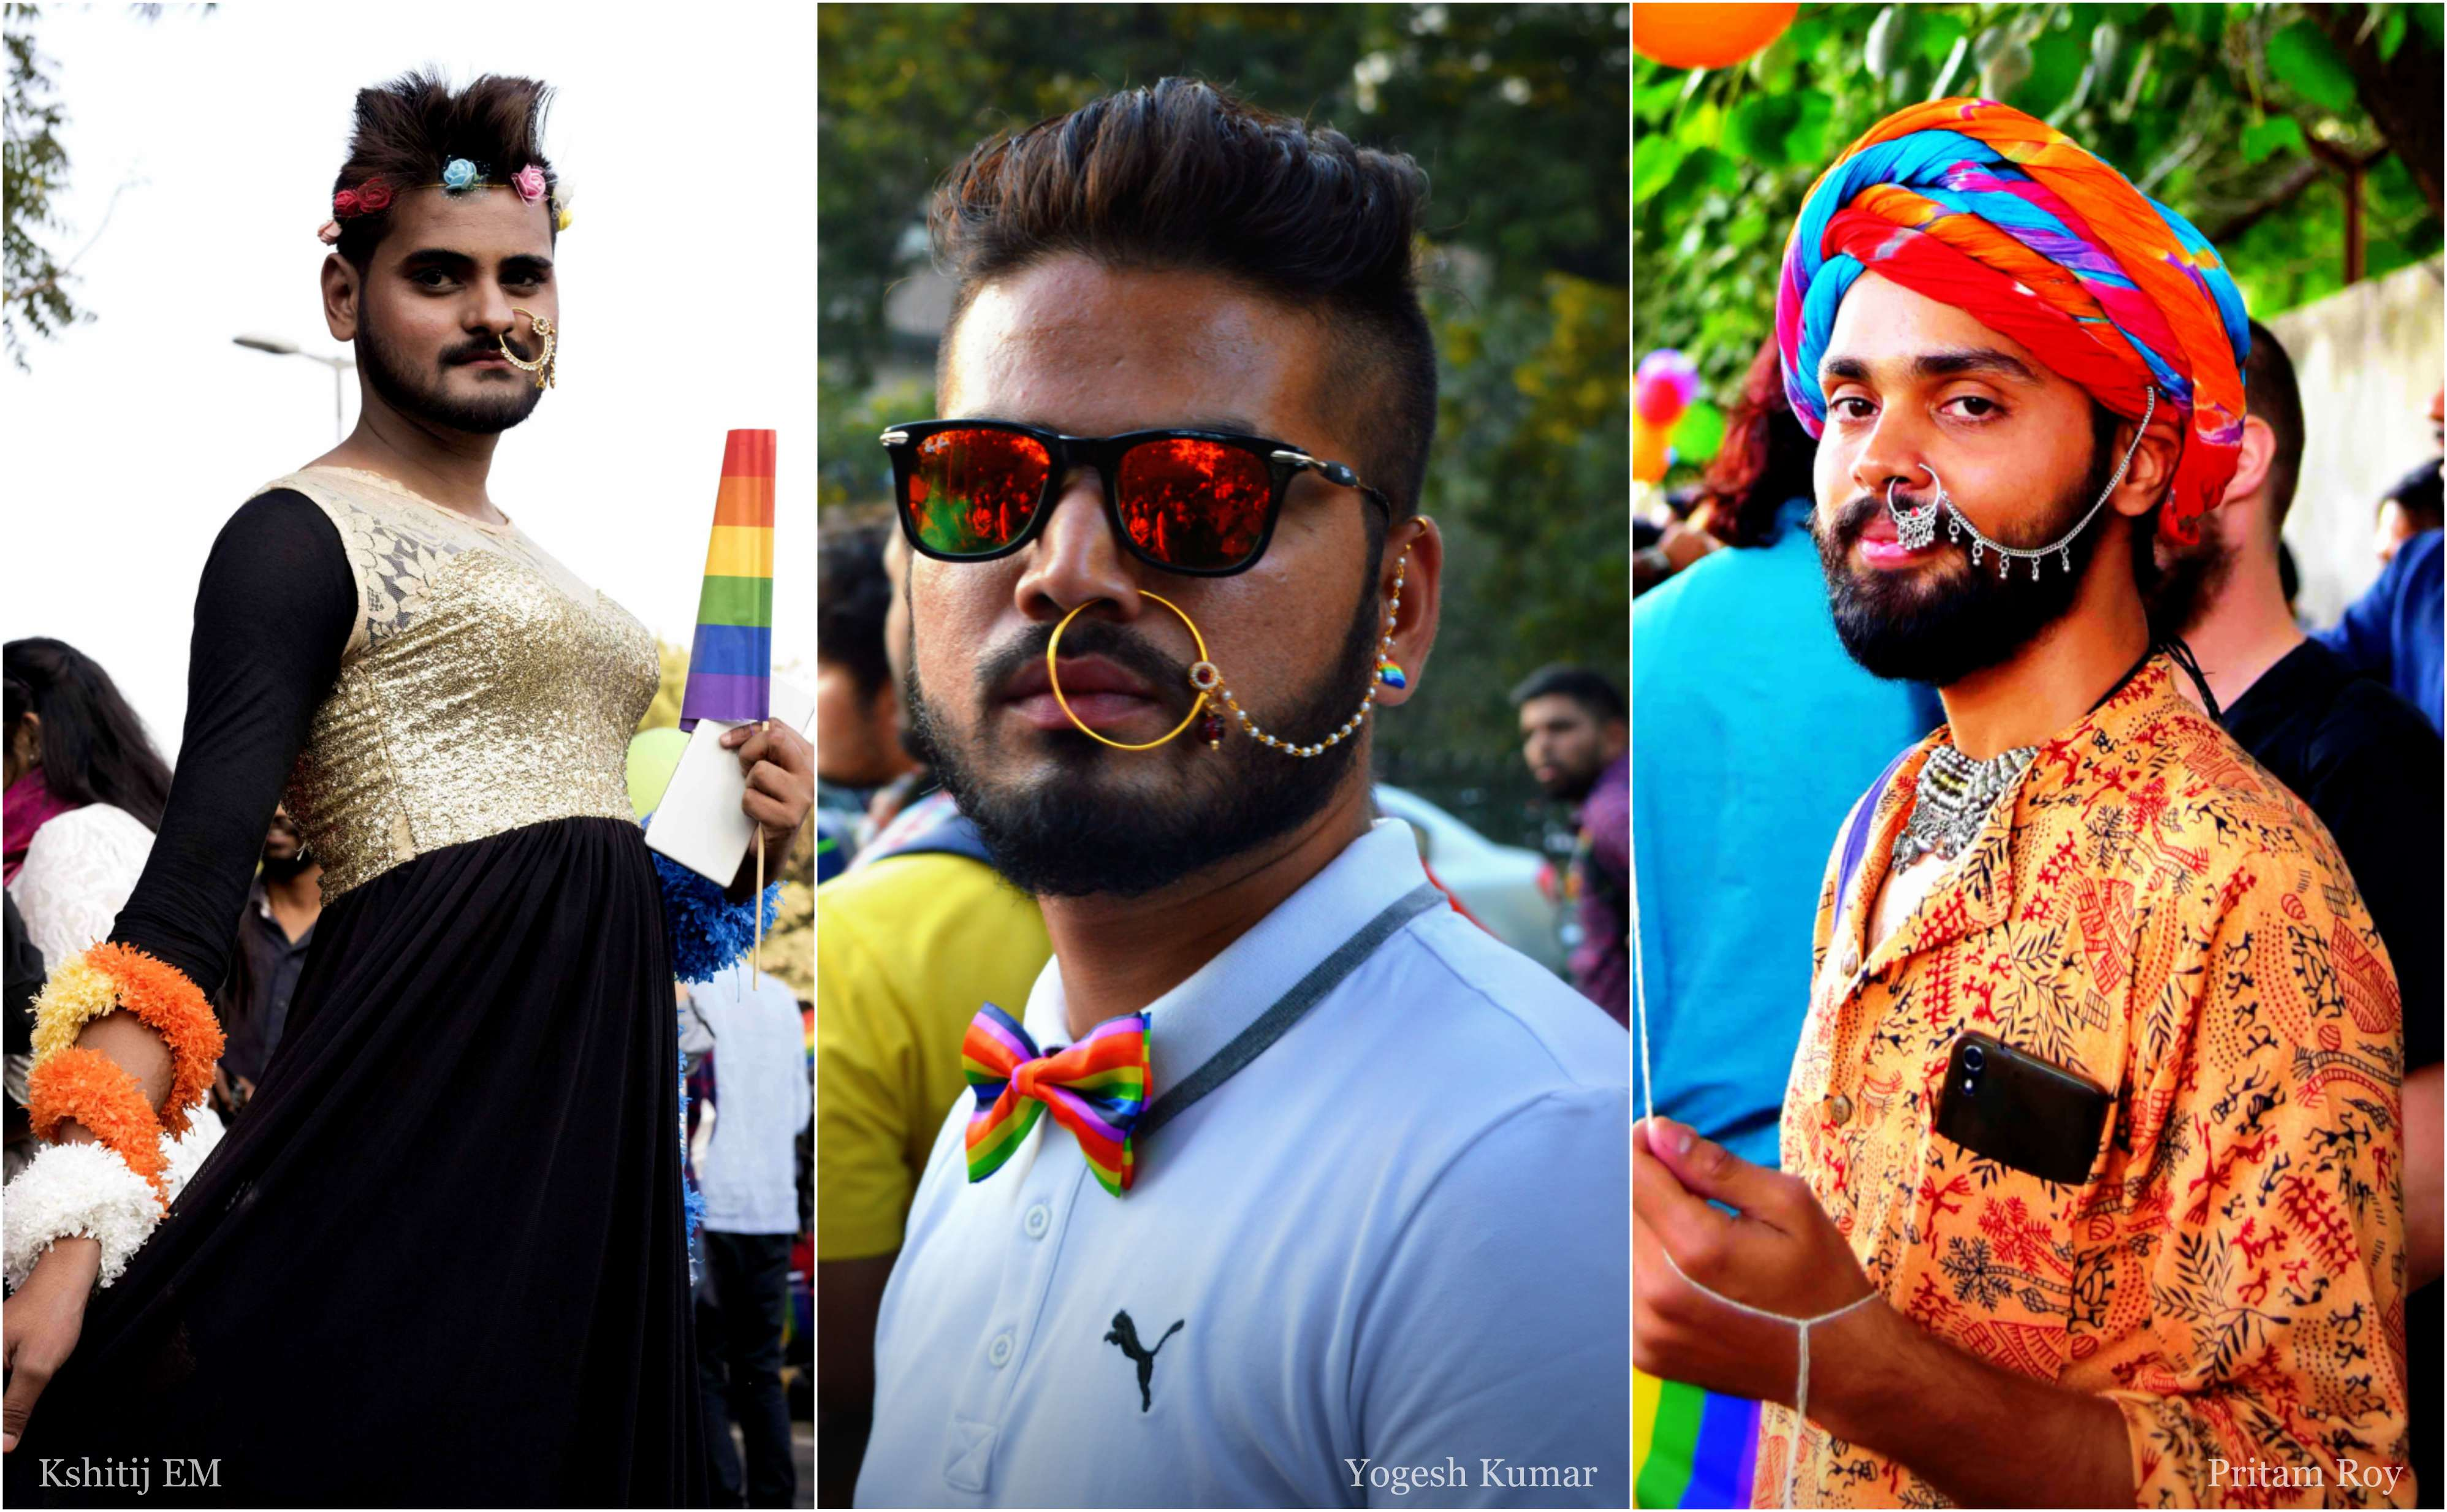 LGBT Pride, gay pride march, india, delhi,